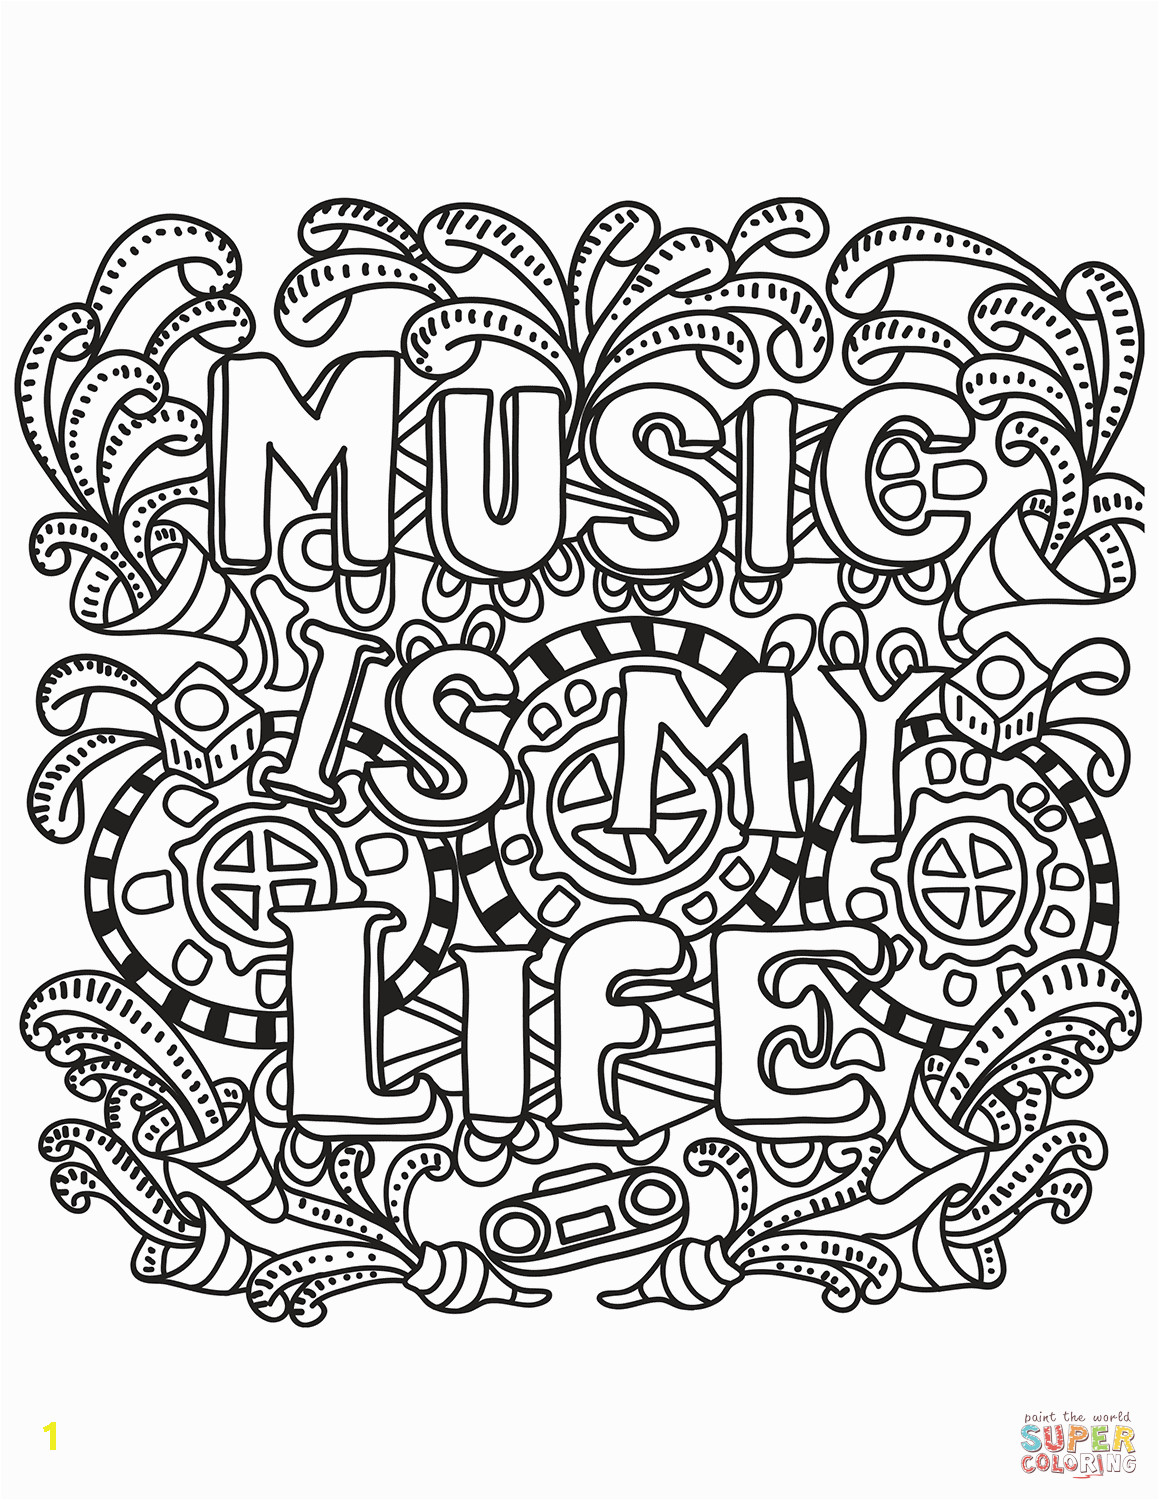 Music is My Life Coloring Pages Music is My Life Coloring Page